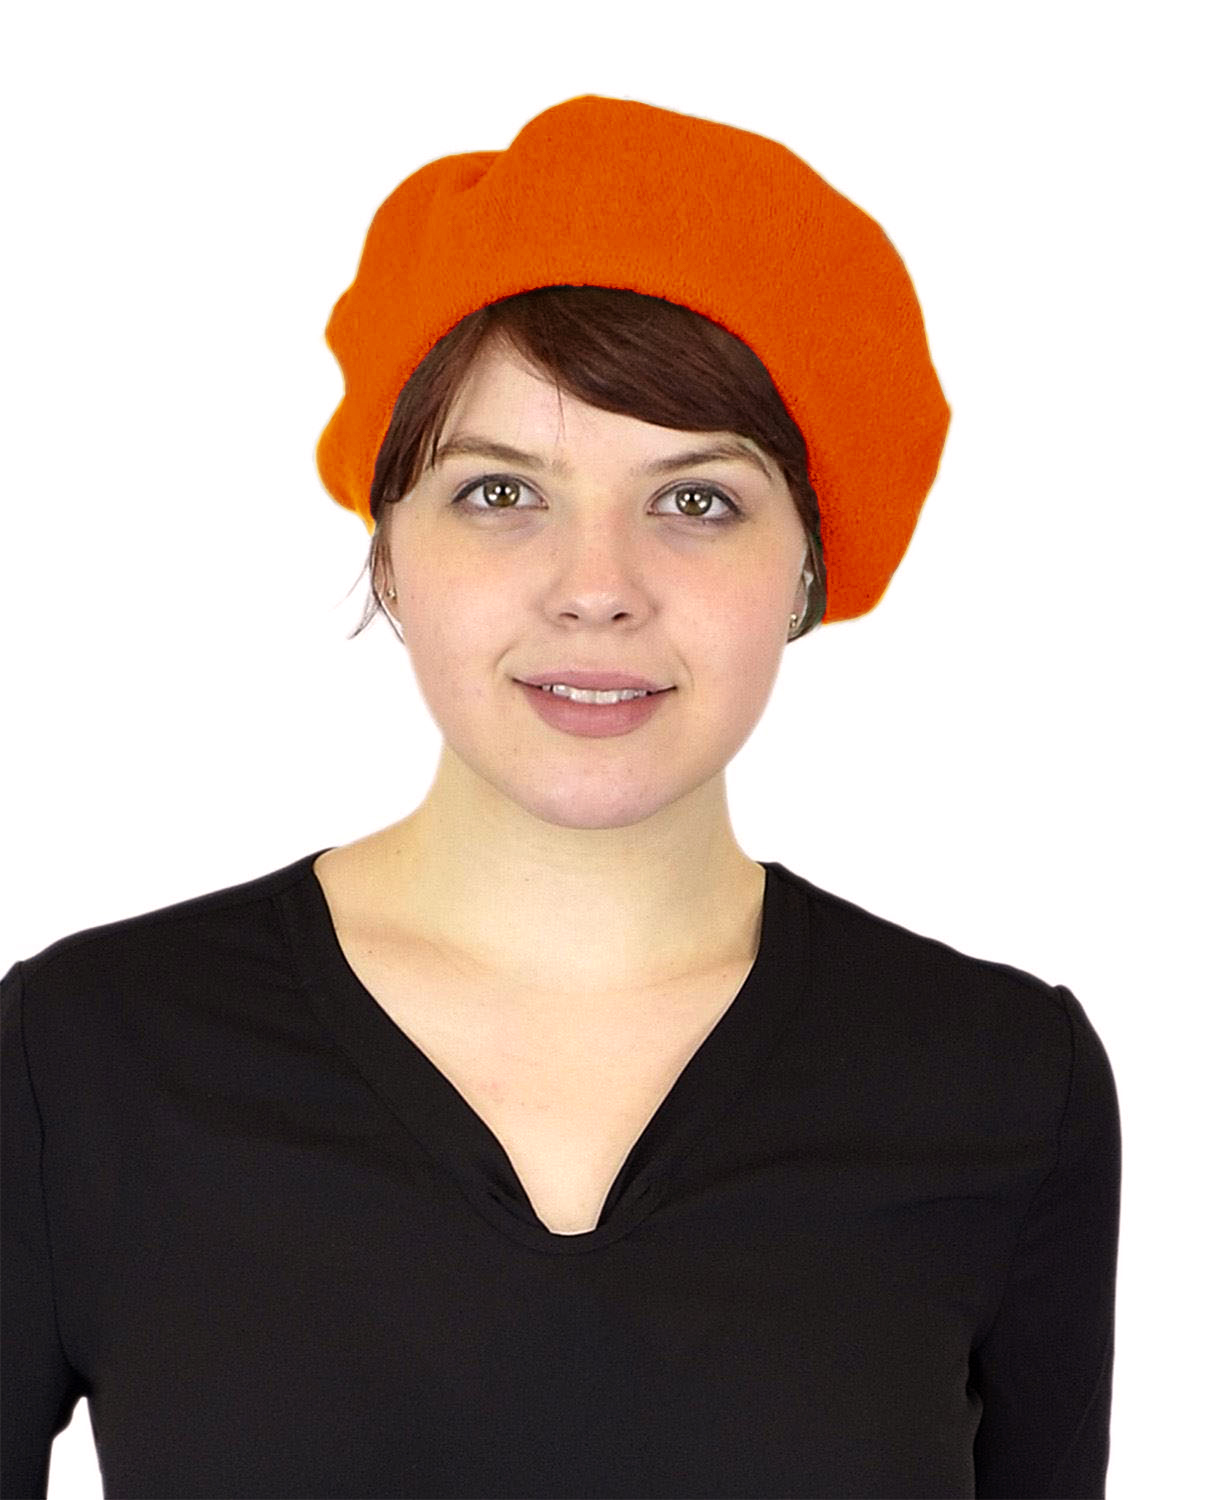 Belle Donne Women's Artist Beret Soft Wool Classic Style Beanie Hat Cap - Orange